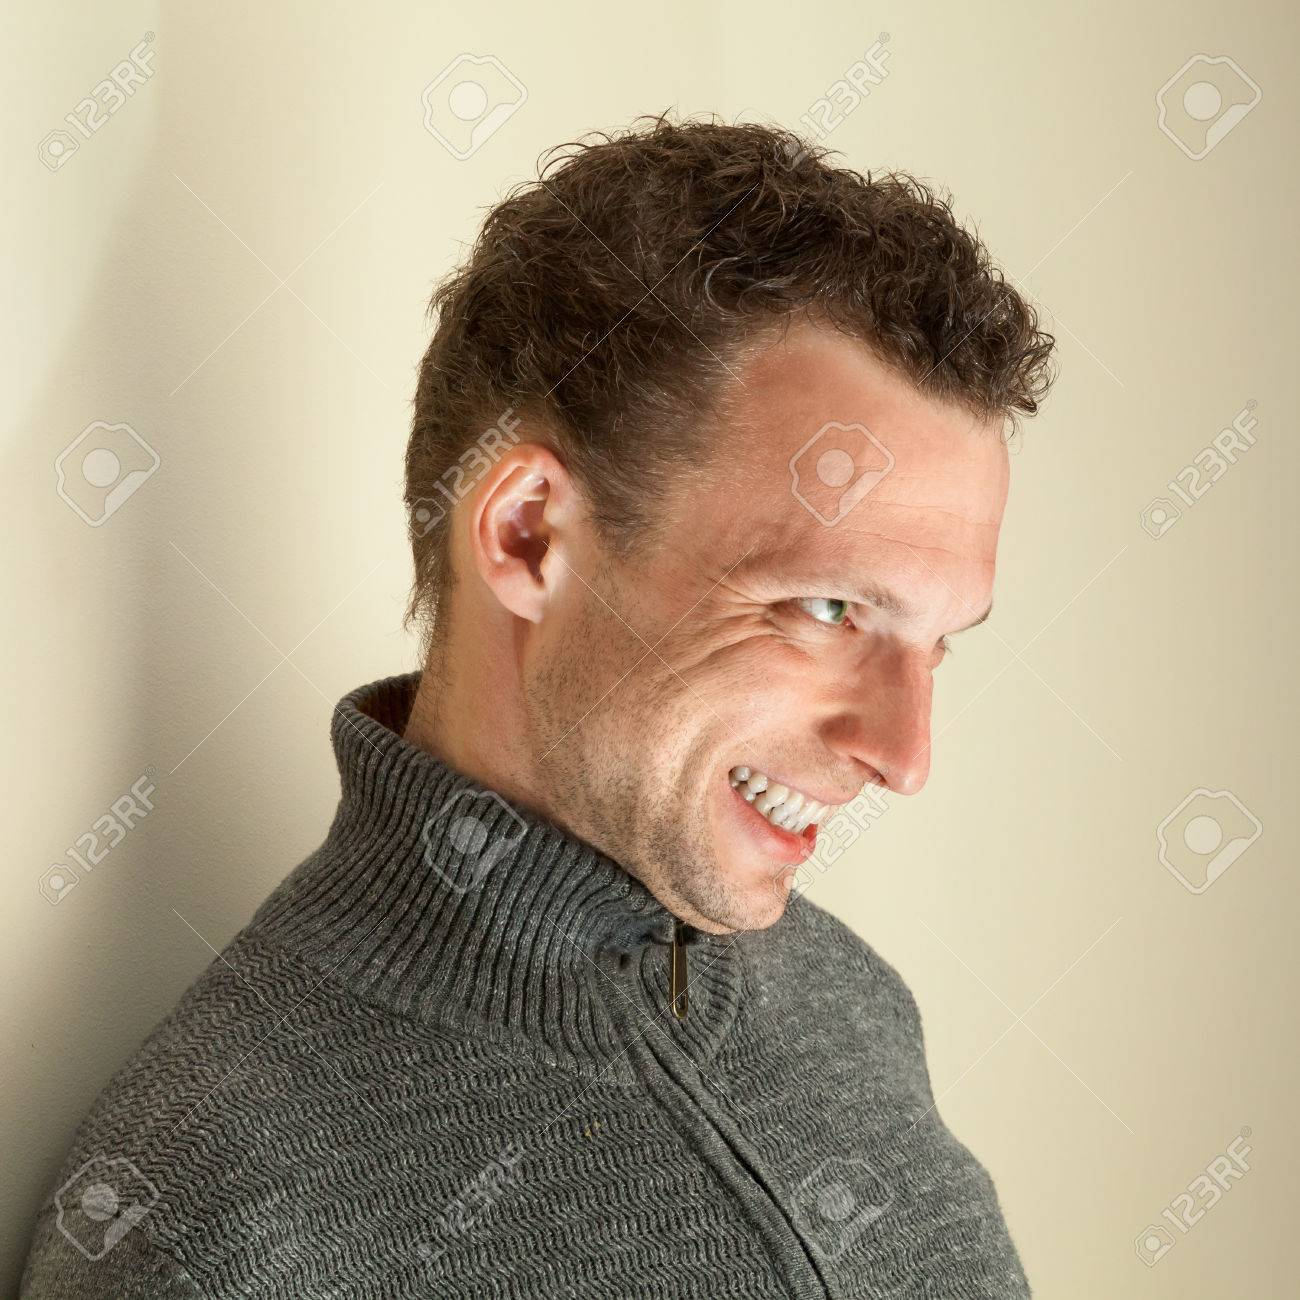 Angry Laughing Young Caucasian Man Closeup Portrait Stock Photo